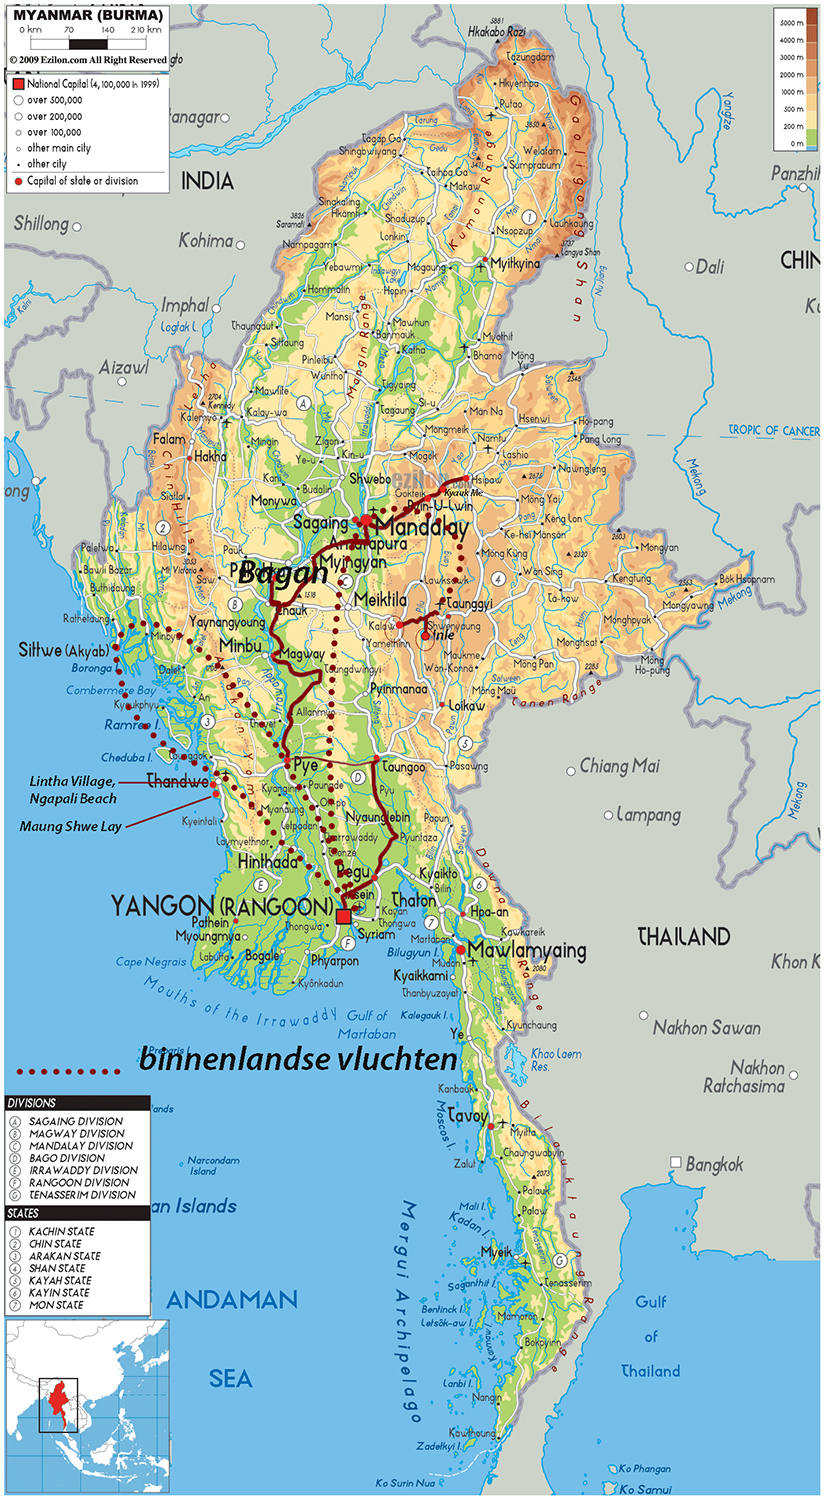 Travelogue MyanmarBurma – Tourist Map Of Myanmar